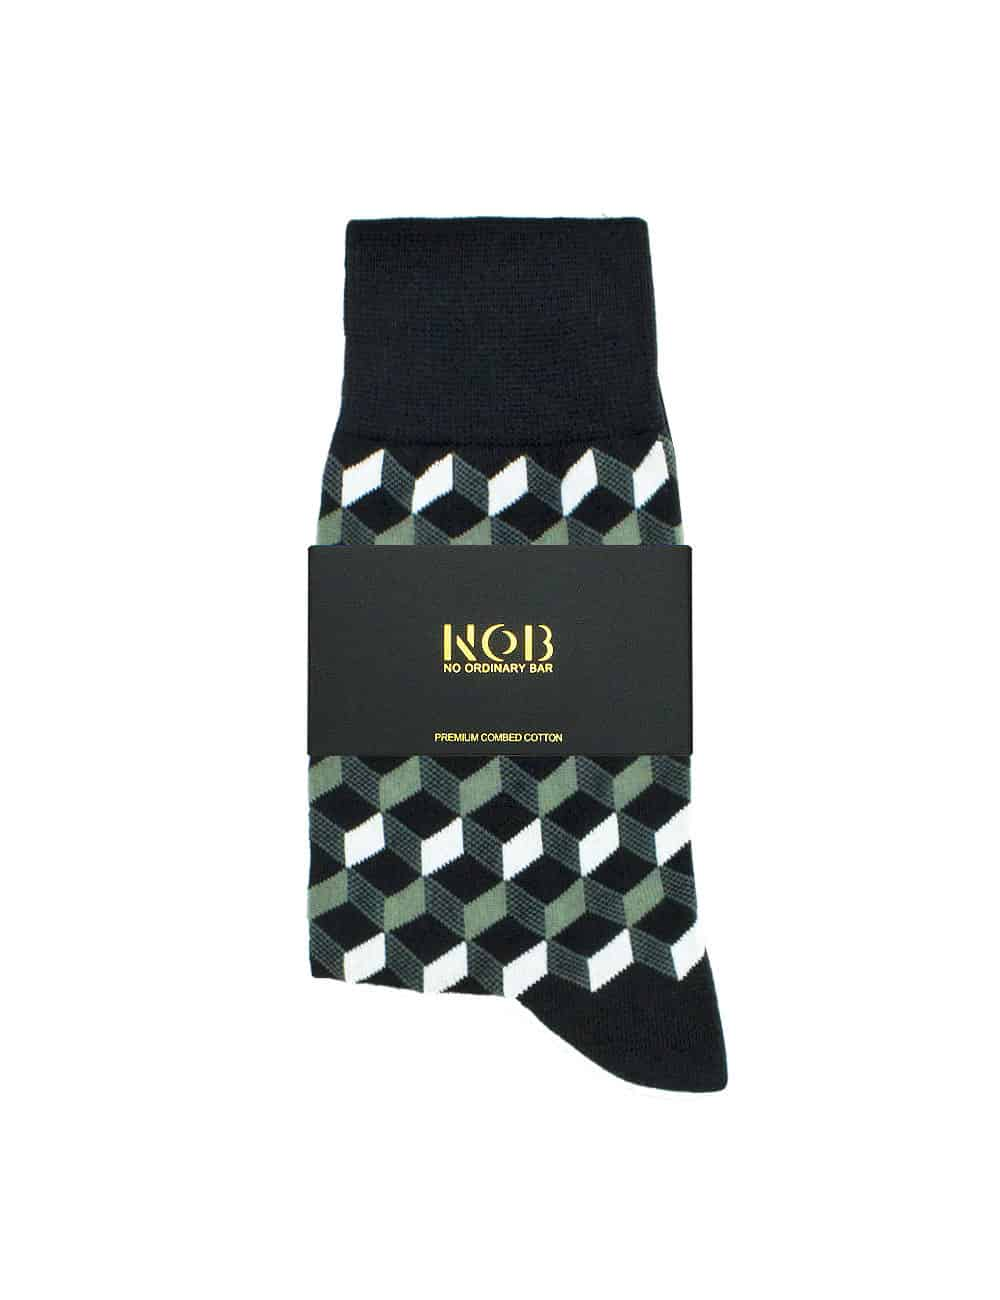 Black with Grey Geometric Design Crew Socks made with Premium Combed Cotton SOC6D.NOB1